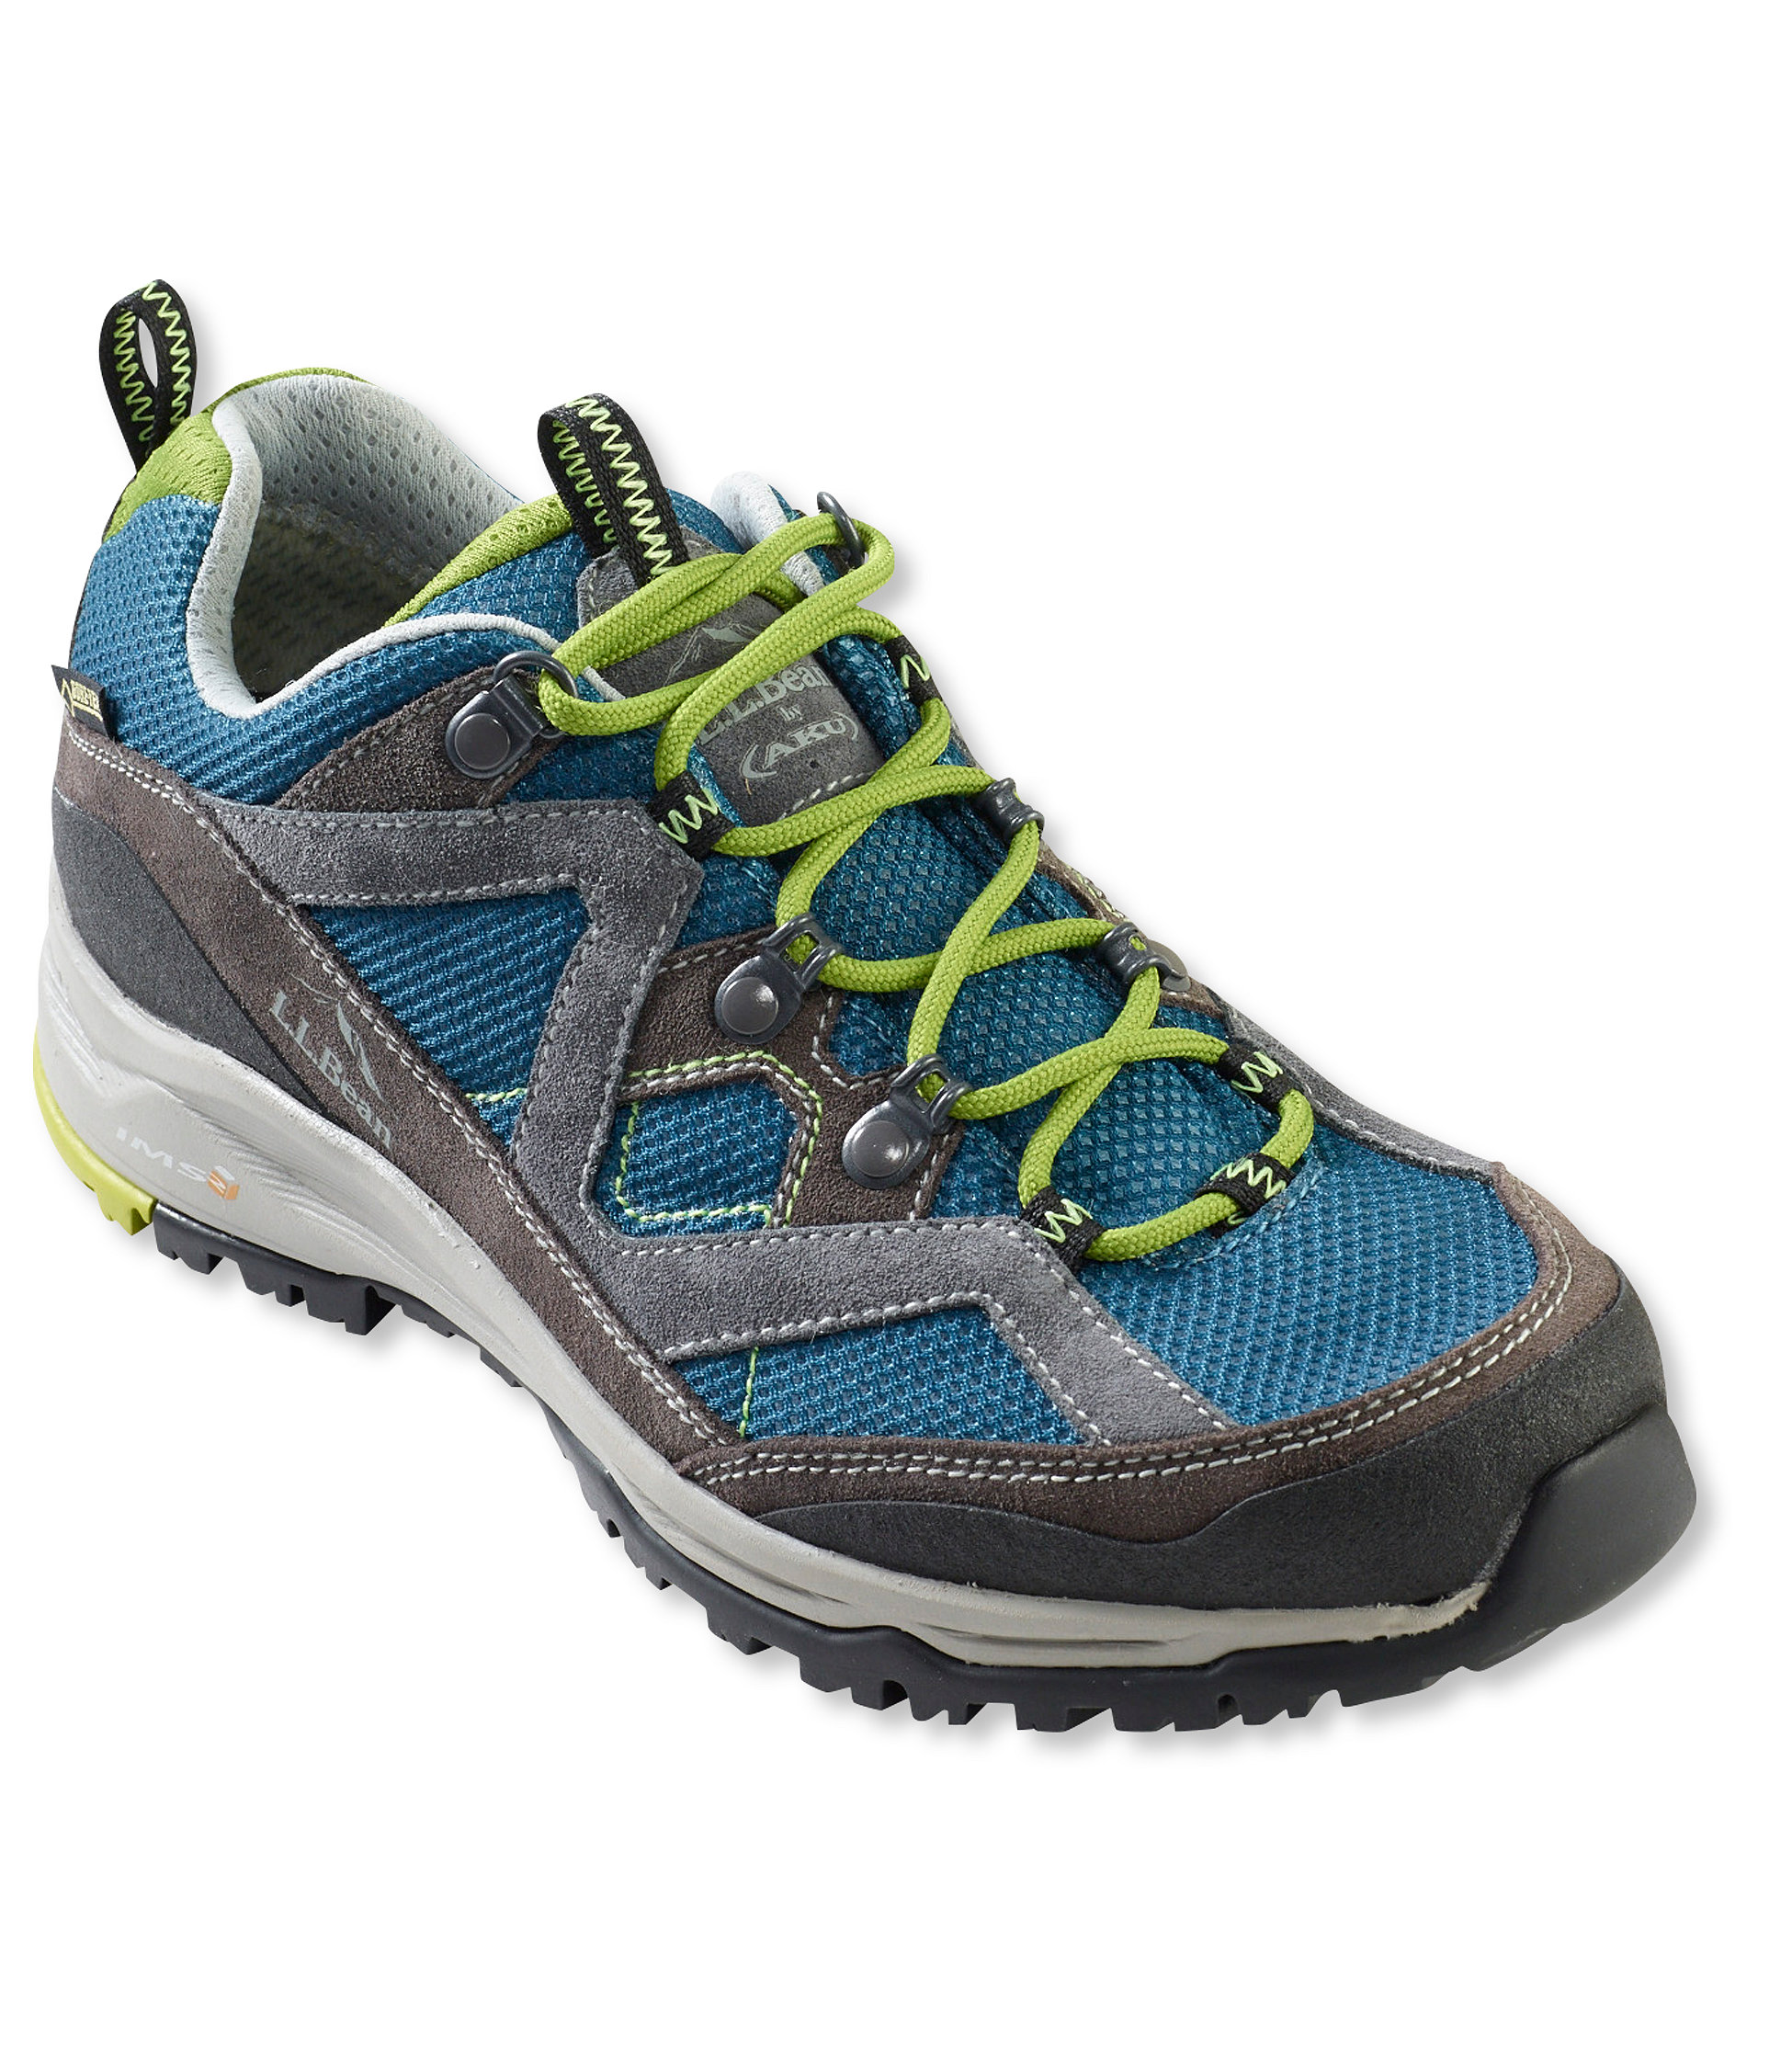 L.L.Bean Rugged Ridge Gore-Tex Hiking Shoes